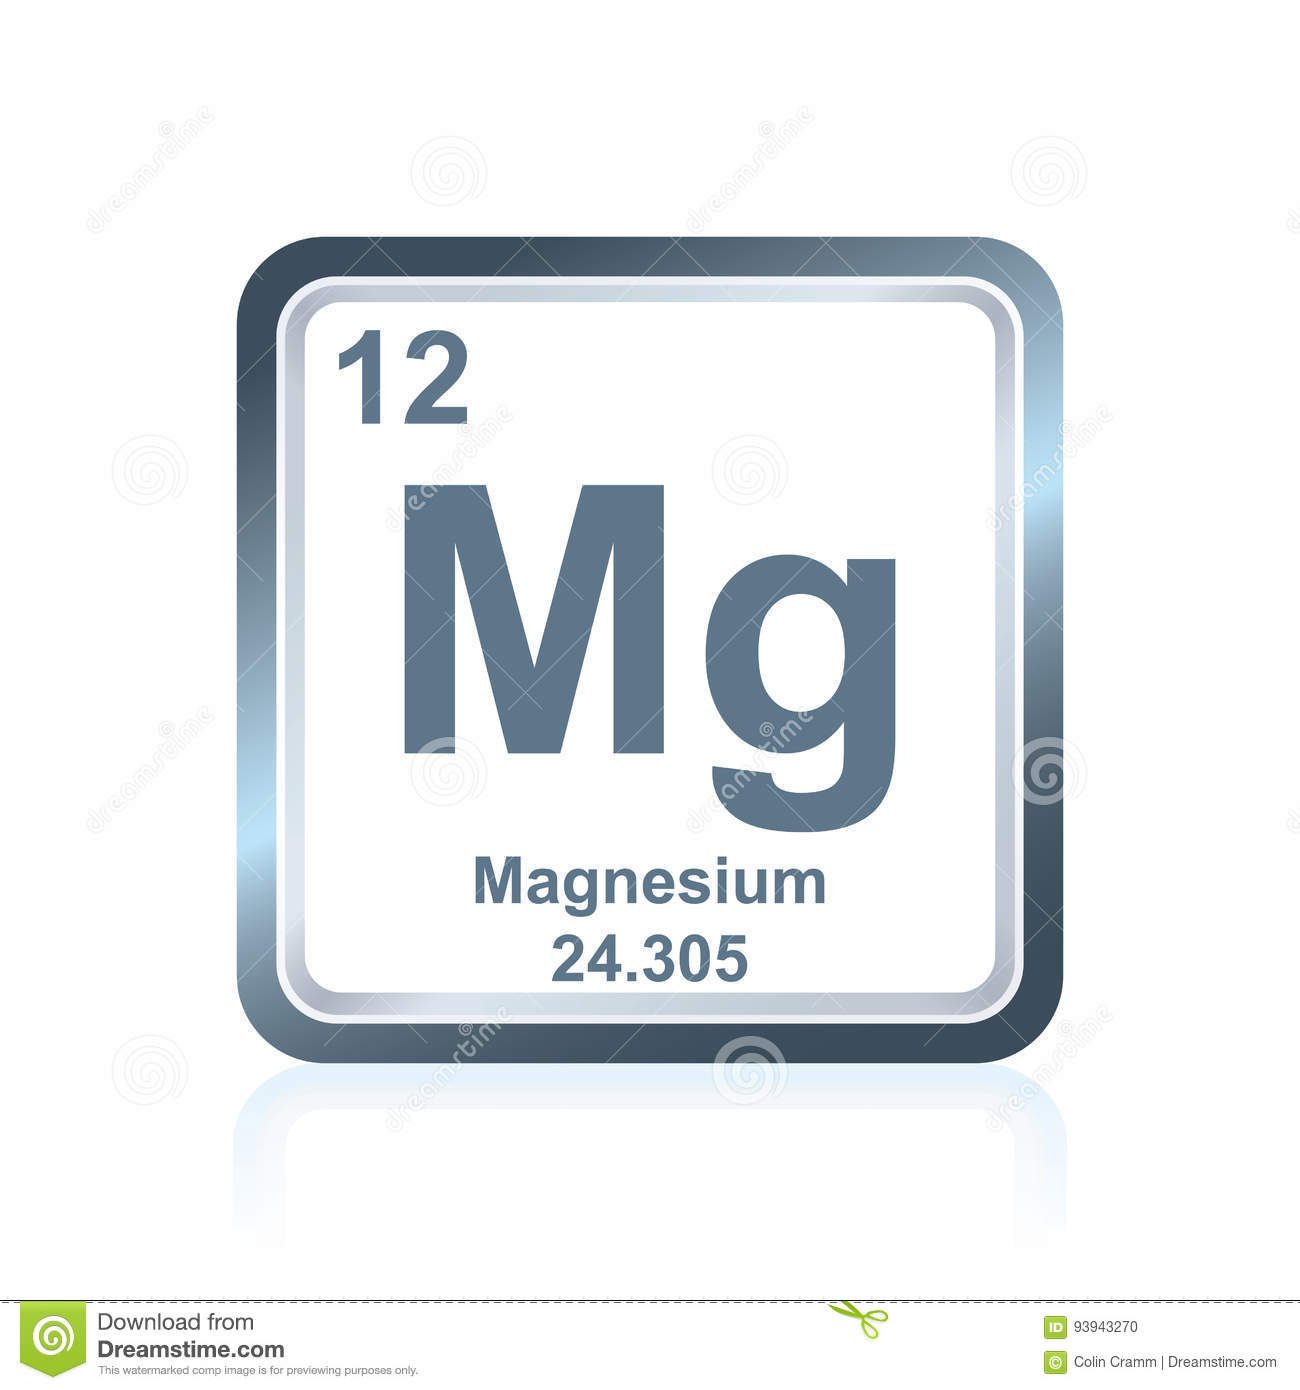 Chemical element magnesium from the periodic table stock vector download chemical element magnesium from the periodic table stock vector illustration of science periodic urtaz Images